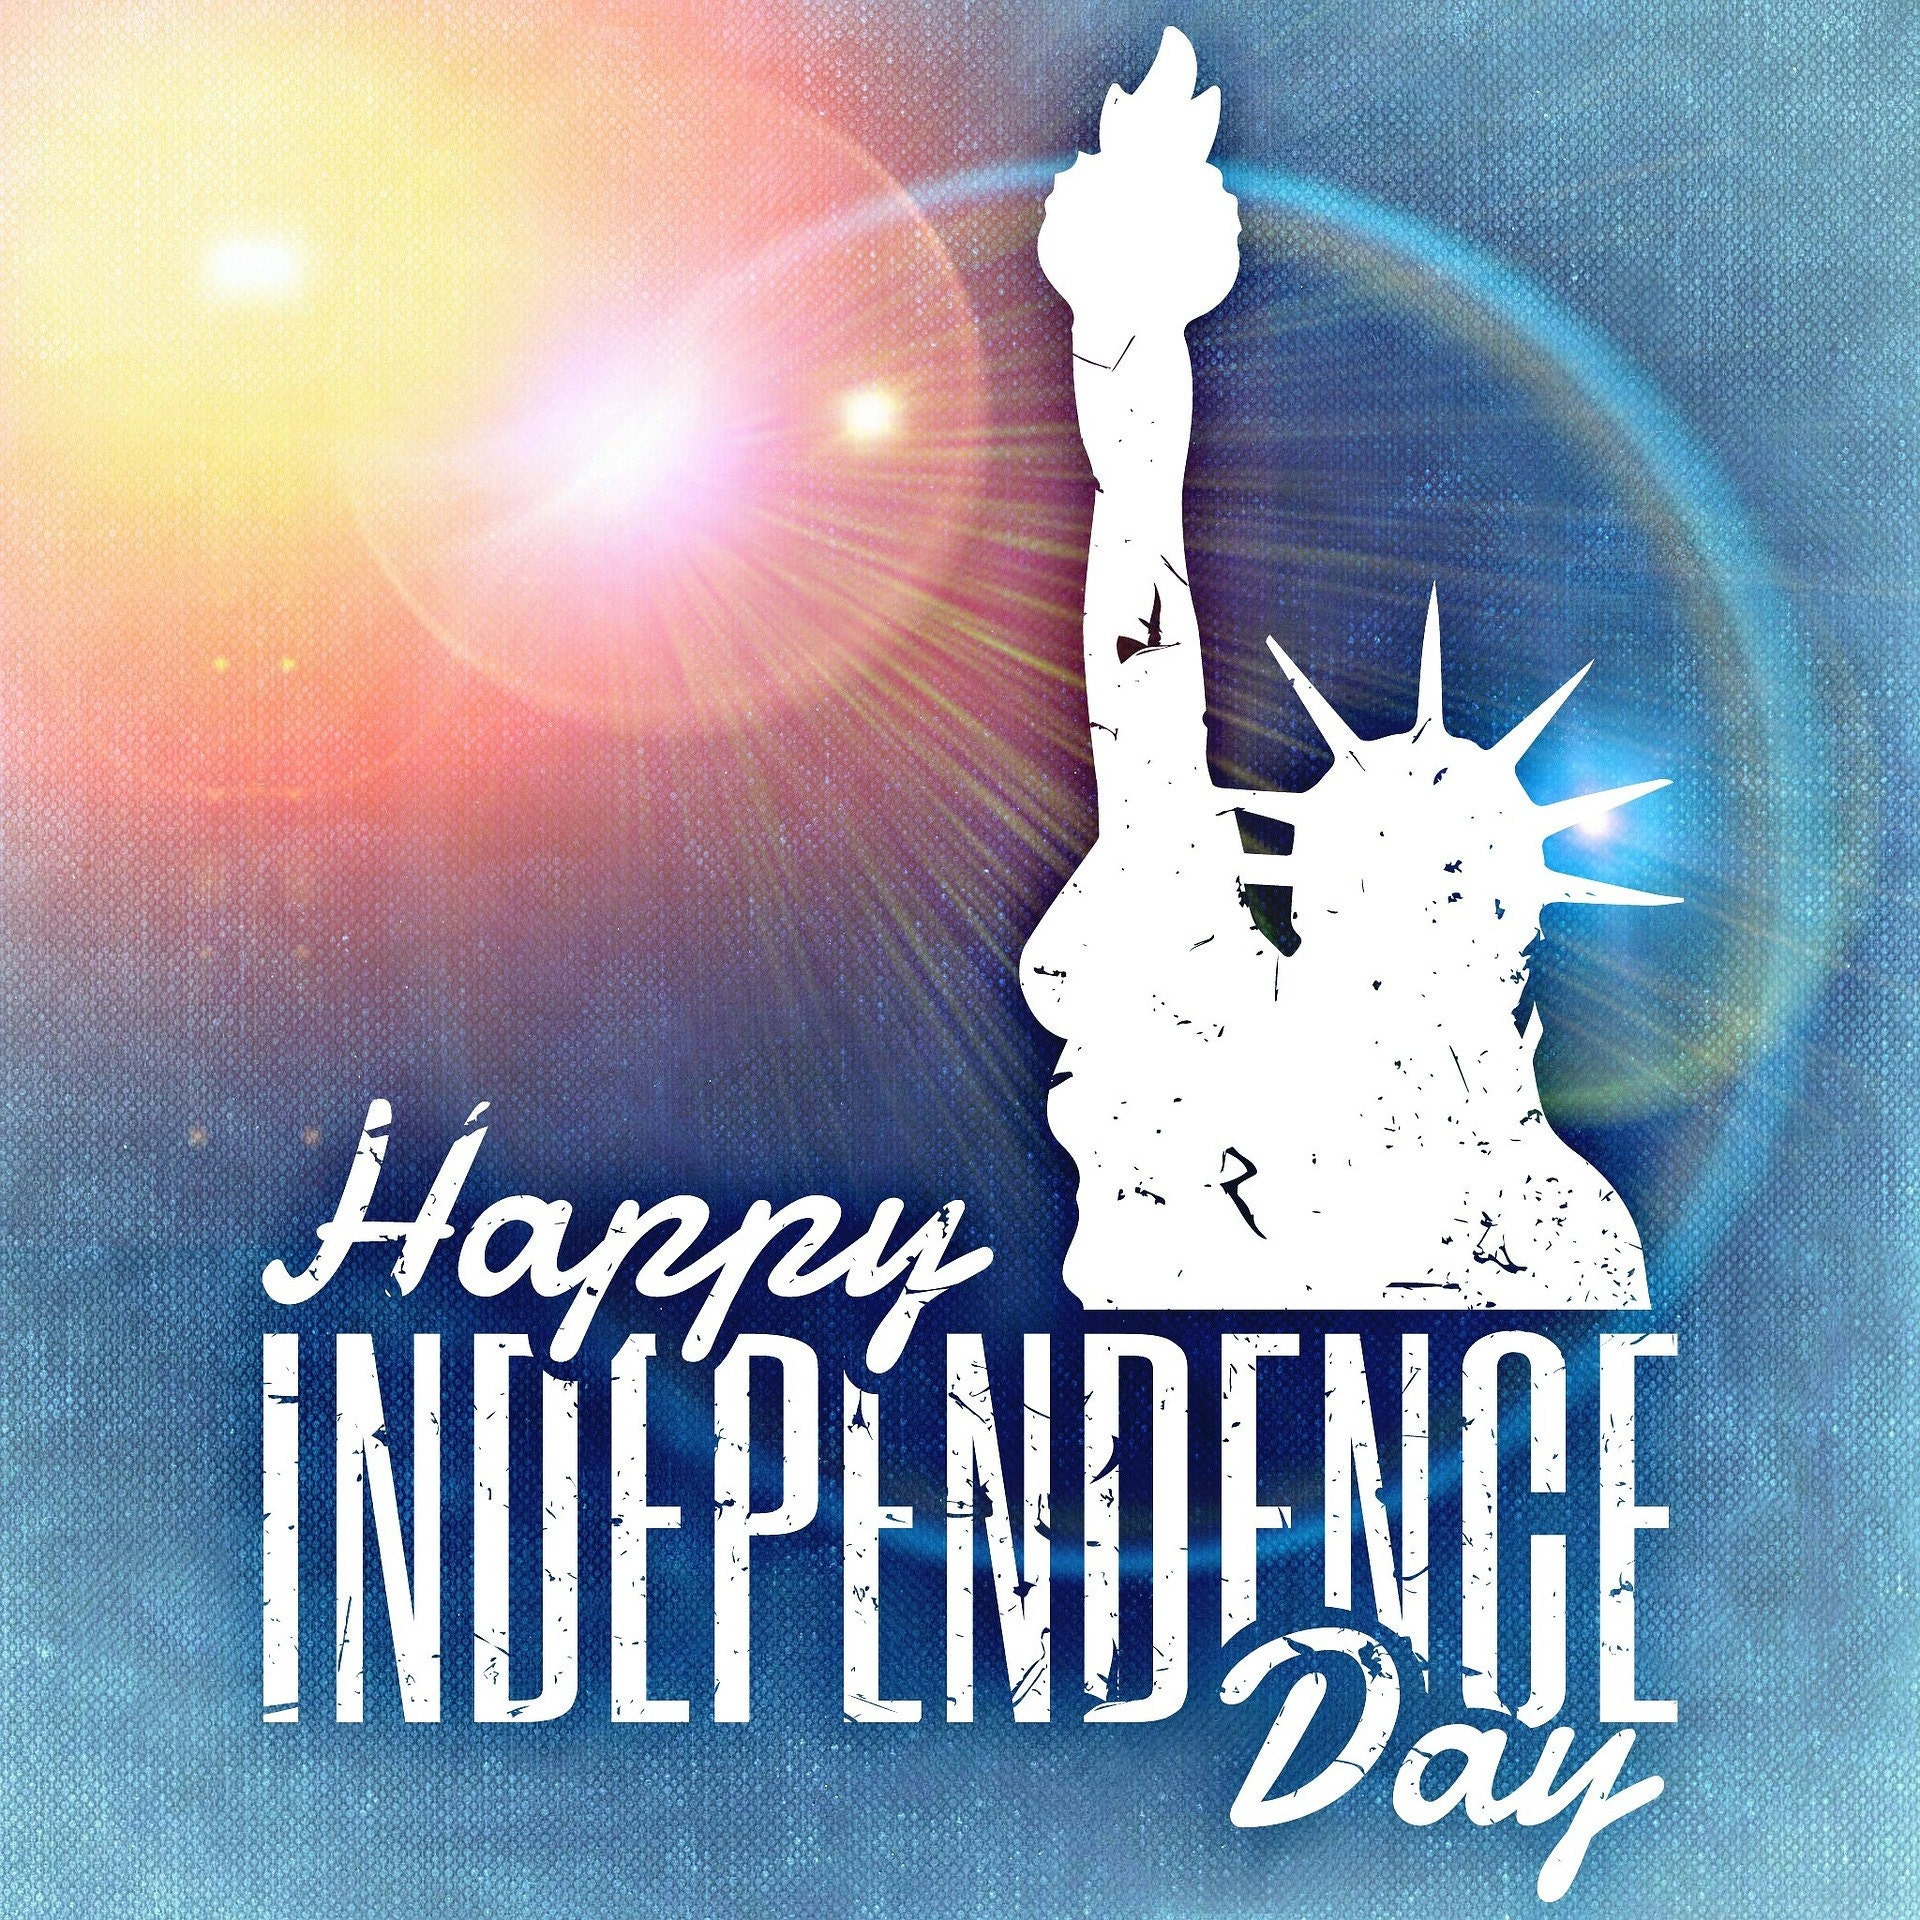 Independence Day, Fourth of July, Statue of Liberty